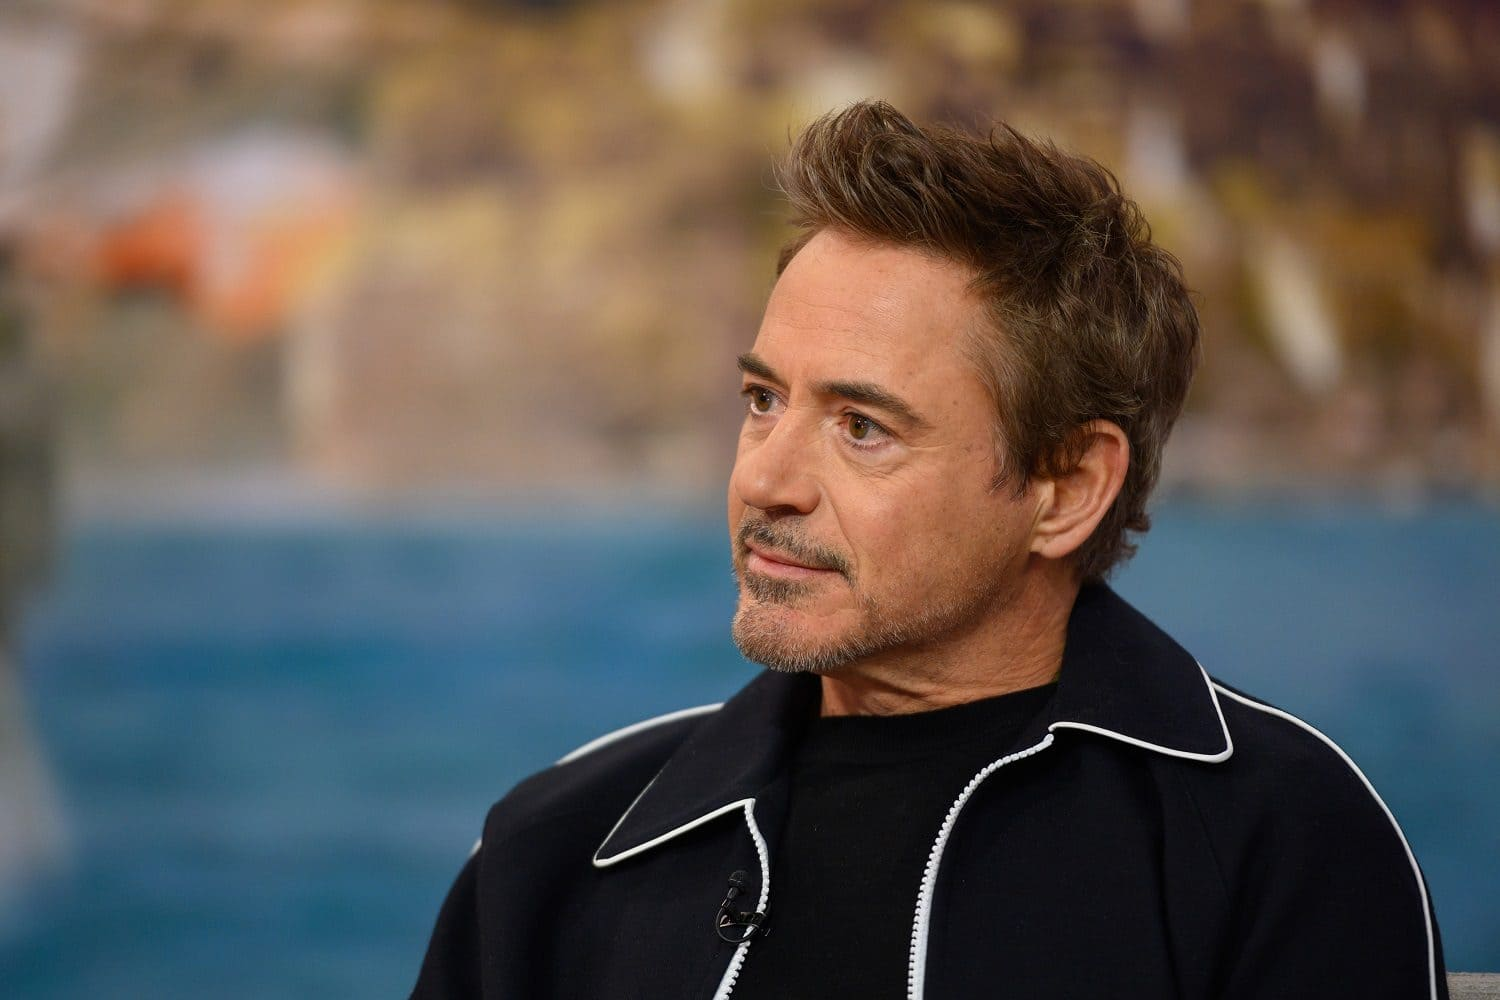 Robert Downey Jr. Wiki, Age, Wife, Net Worth, Family & More 2